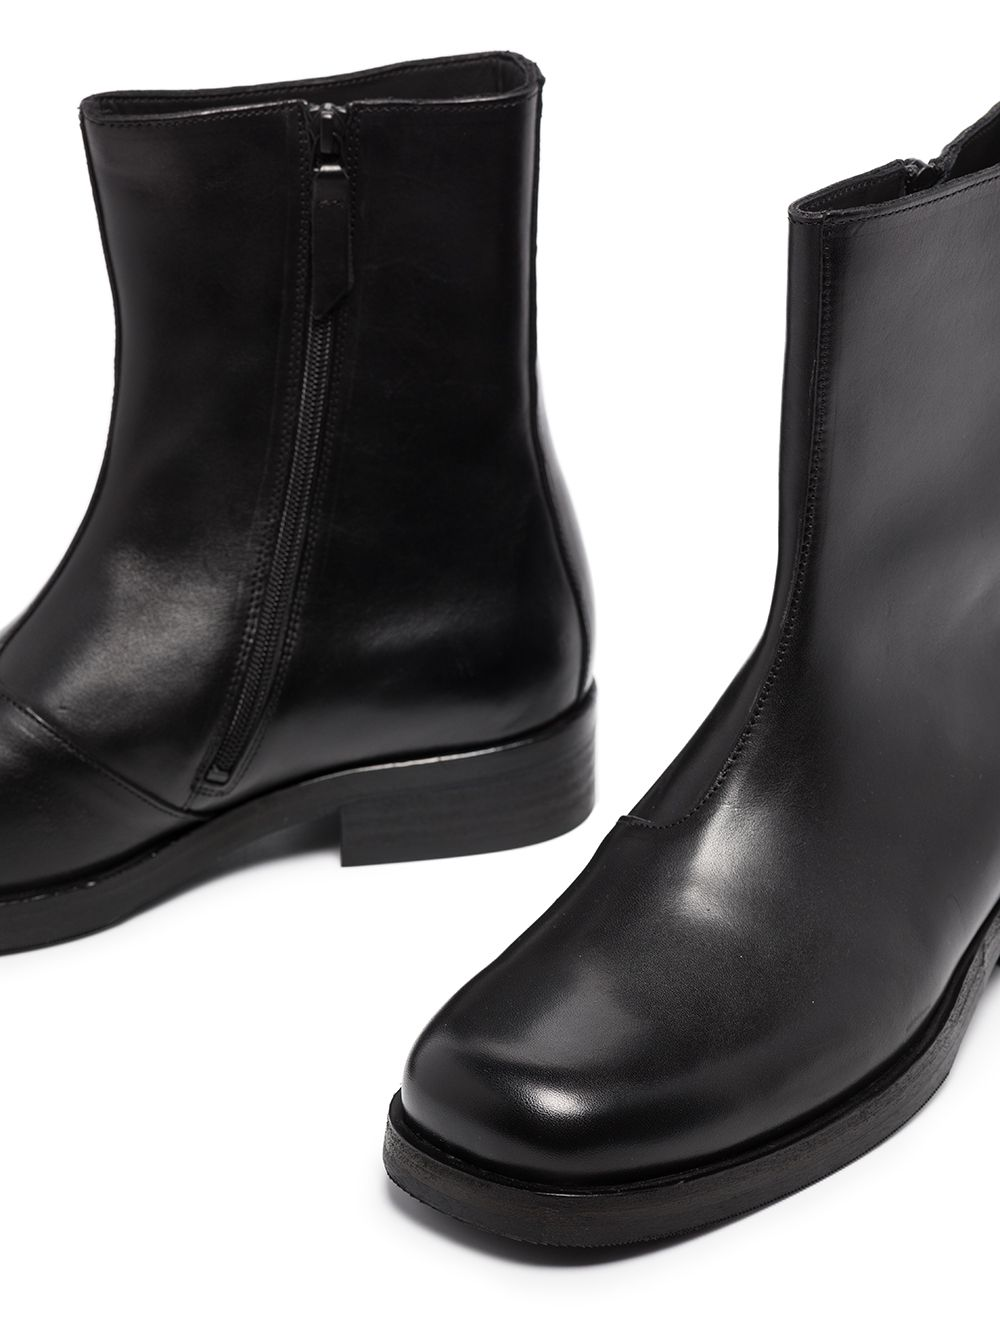 camion boots man black in leather OUR LEGACY | Boots | COCBBLACK